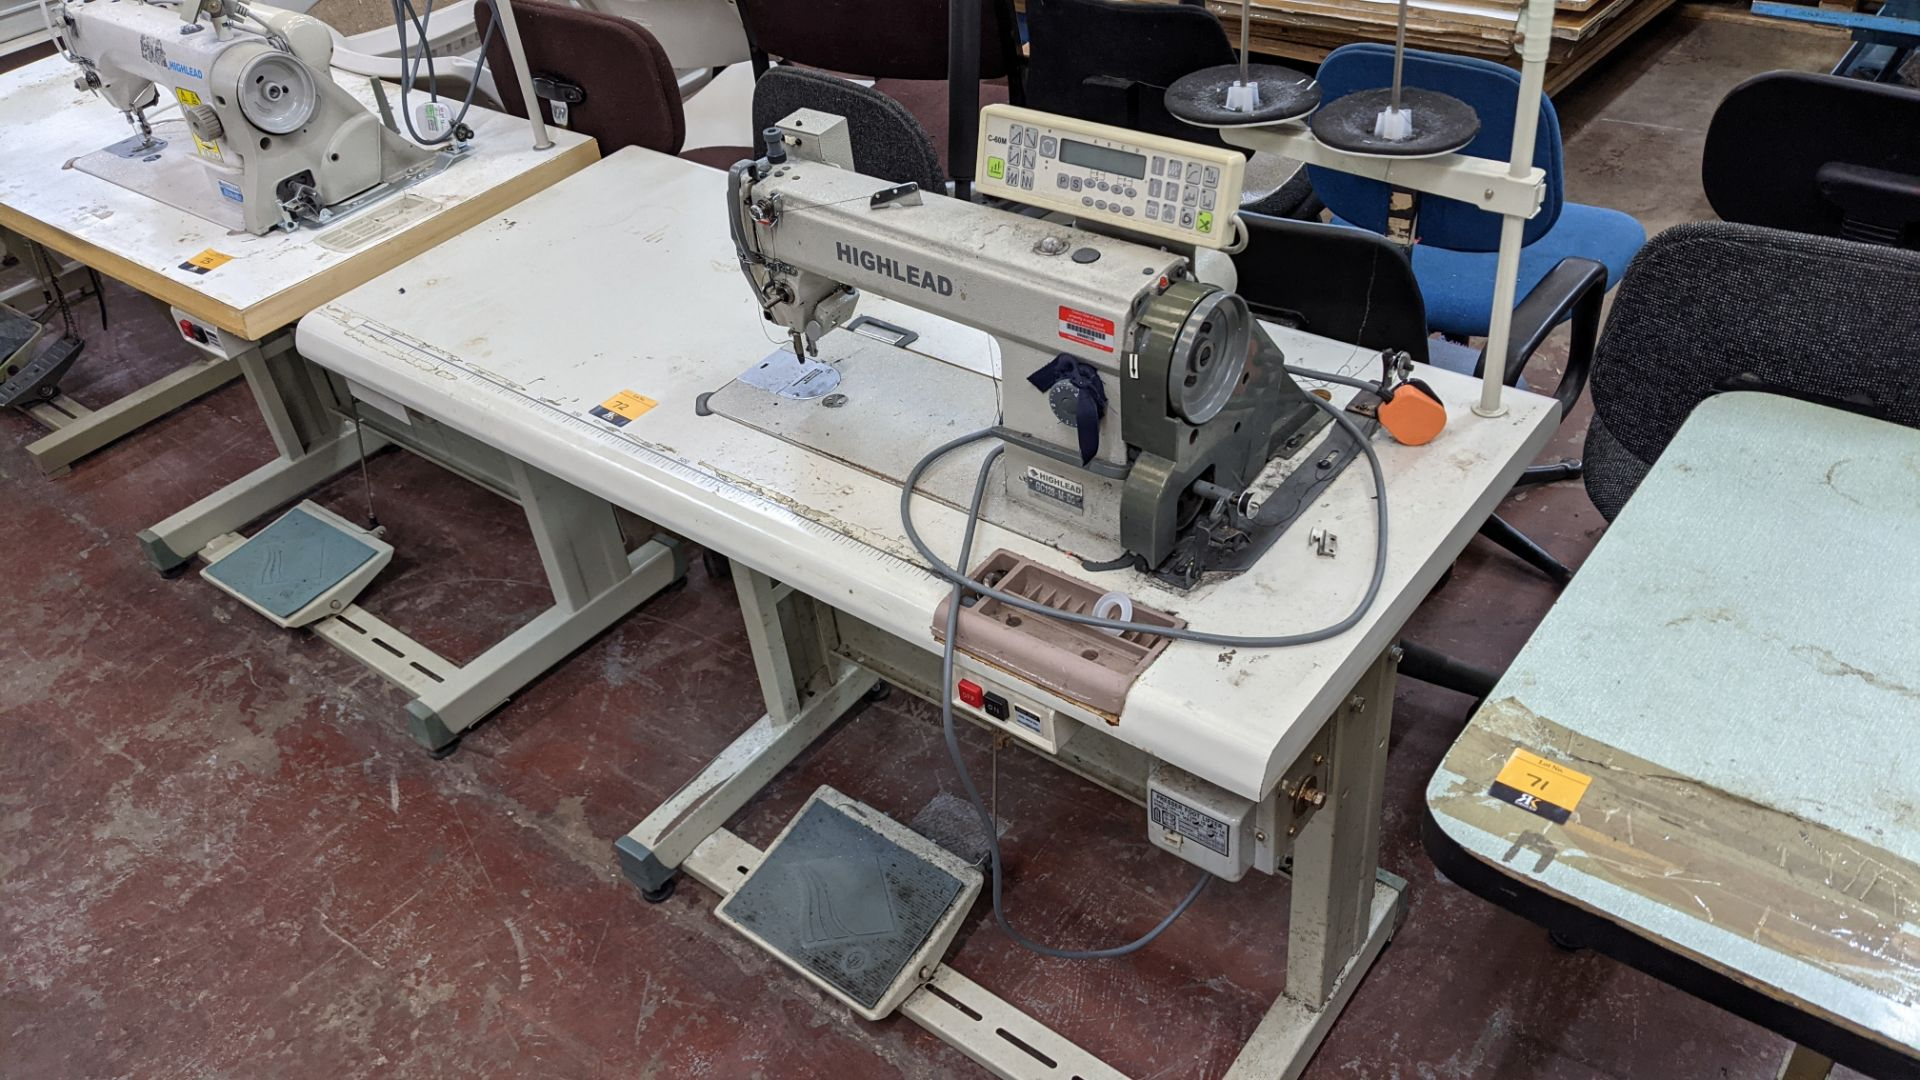 Highlead model GC128-M-D3 sewing machine with model C-60M digital controller - Image 2 of 14